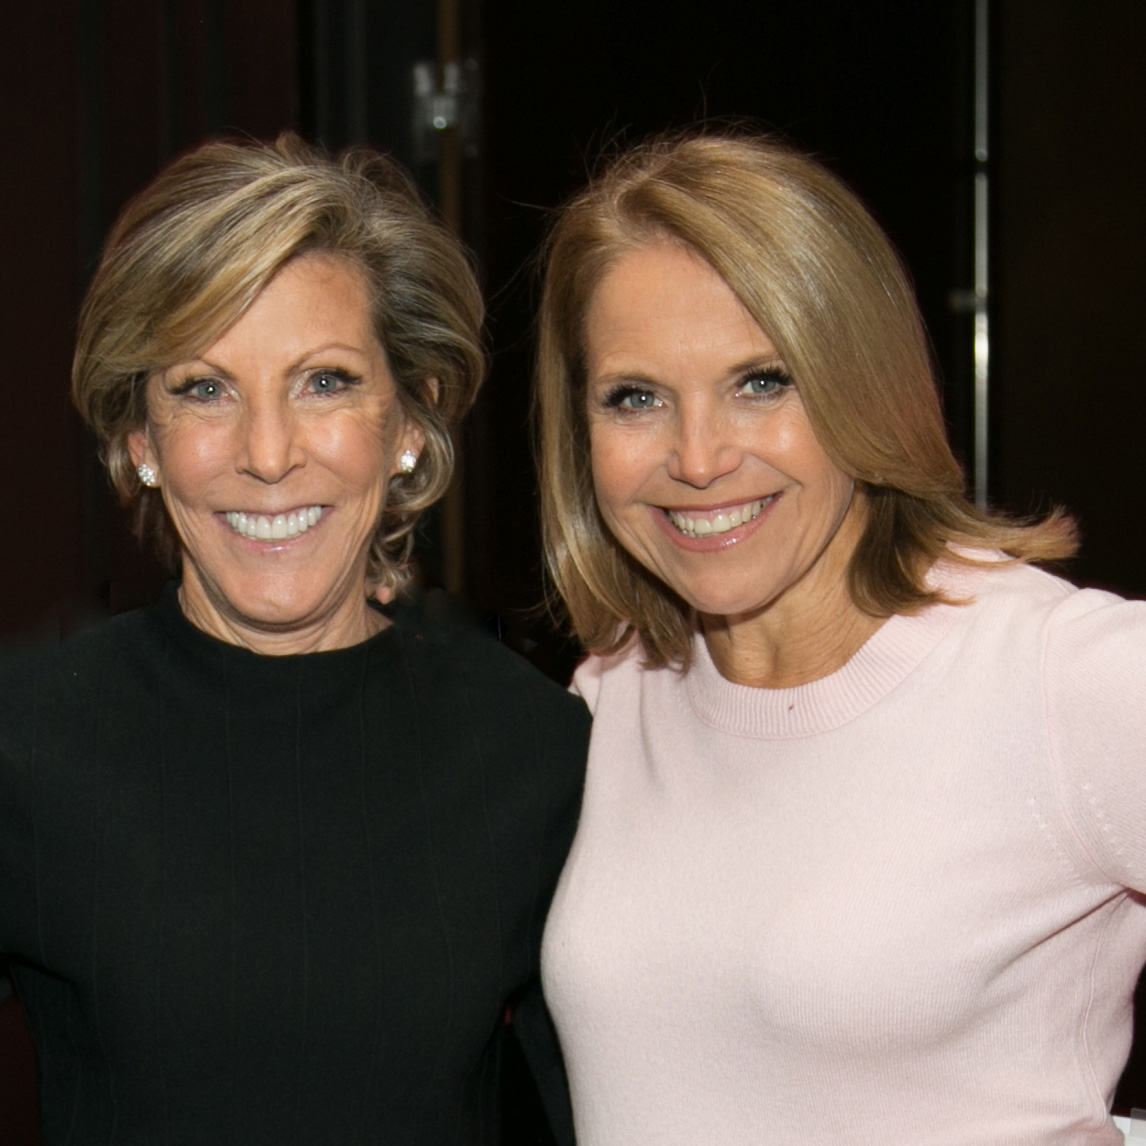 Kathy Giusti and Katie Couric